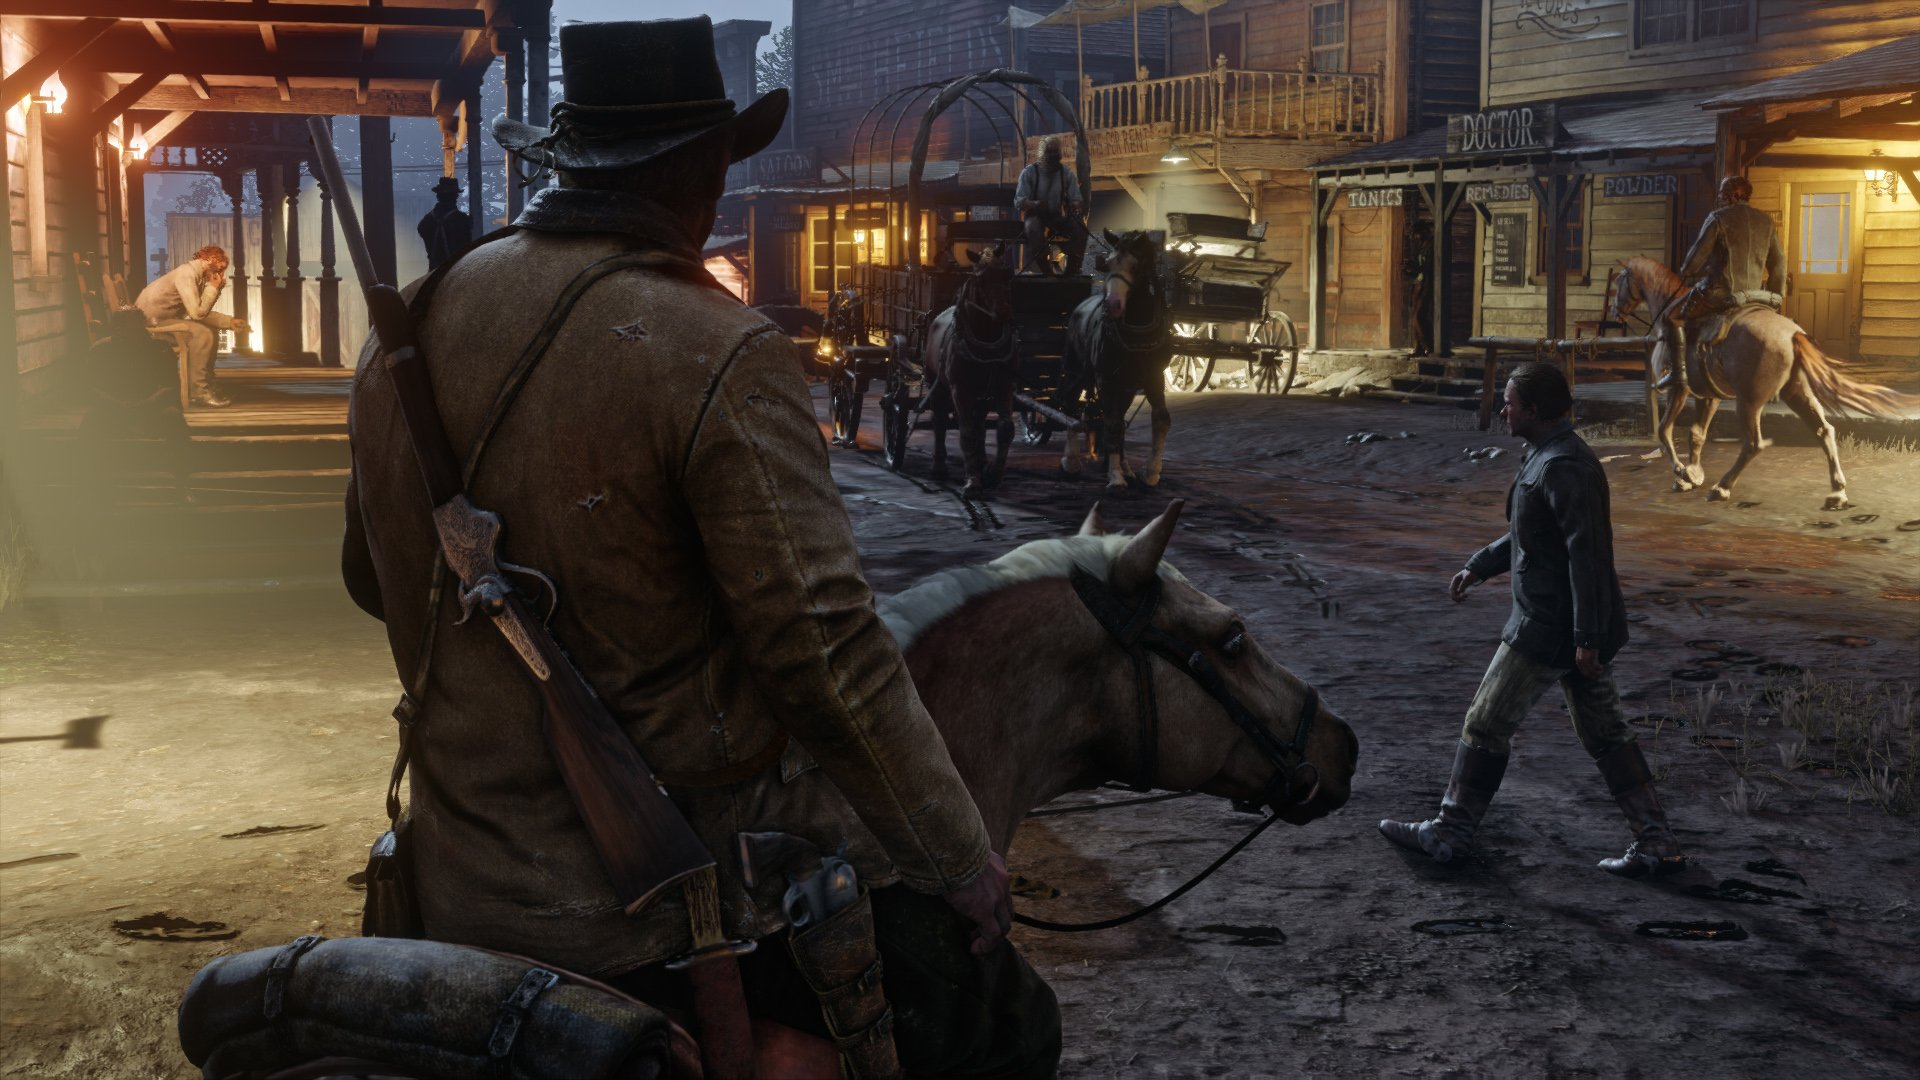 How to unlock all cheat codes in Red Dead Redemption 2